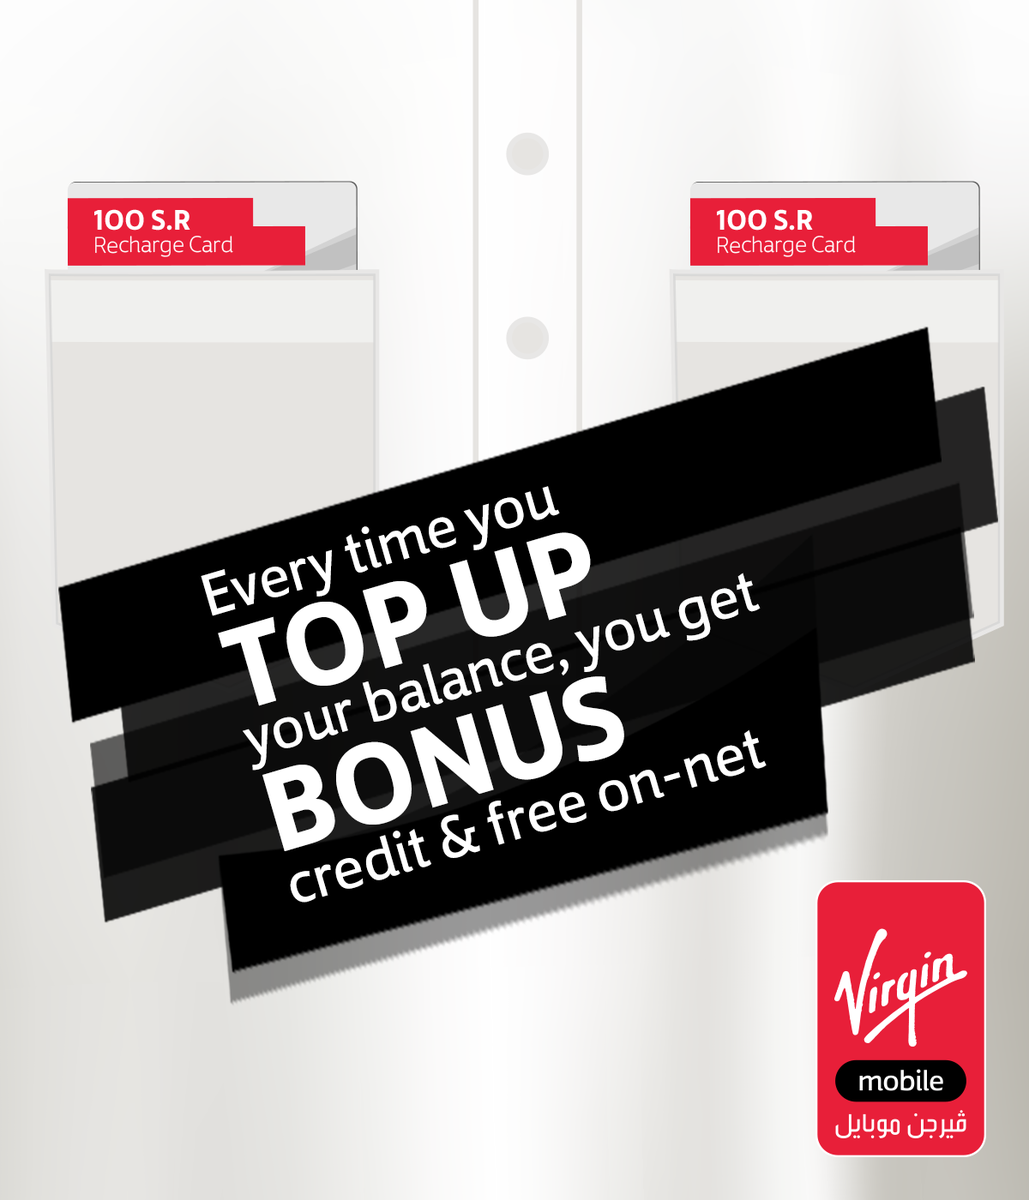 Virgin Mobile KSA on Twitter: